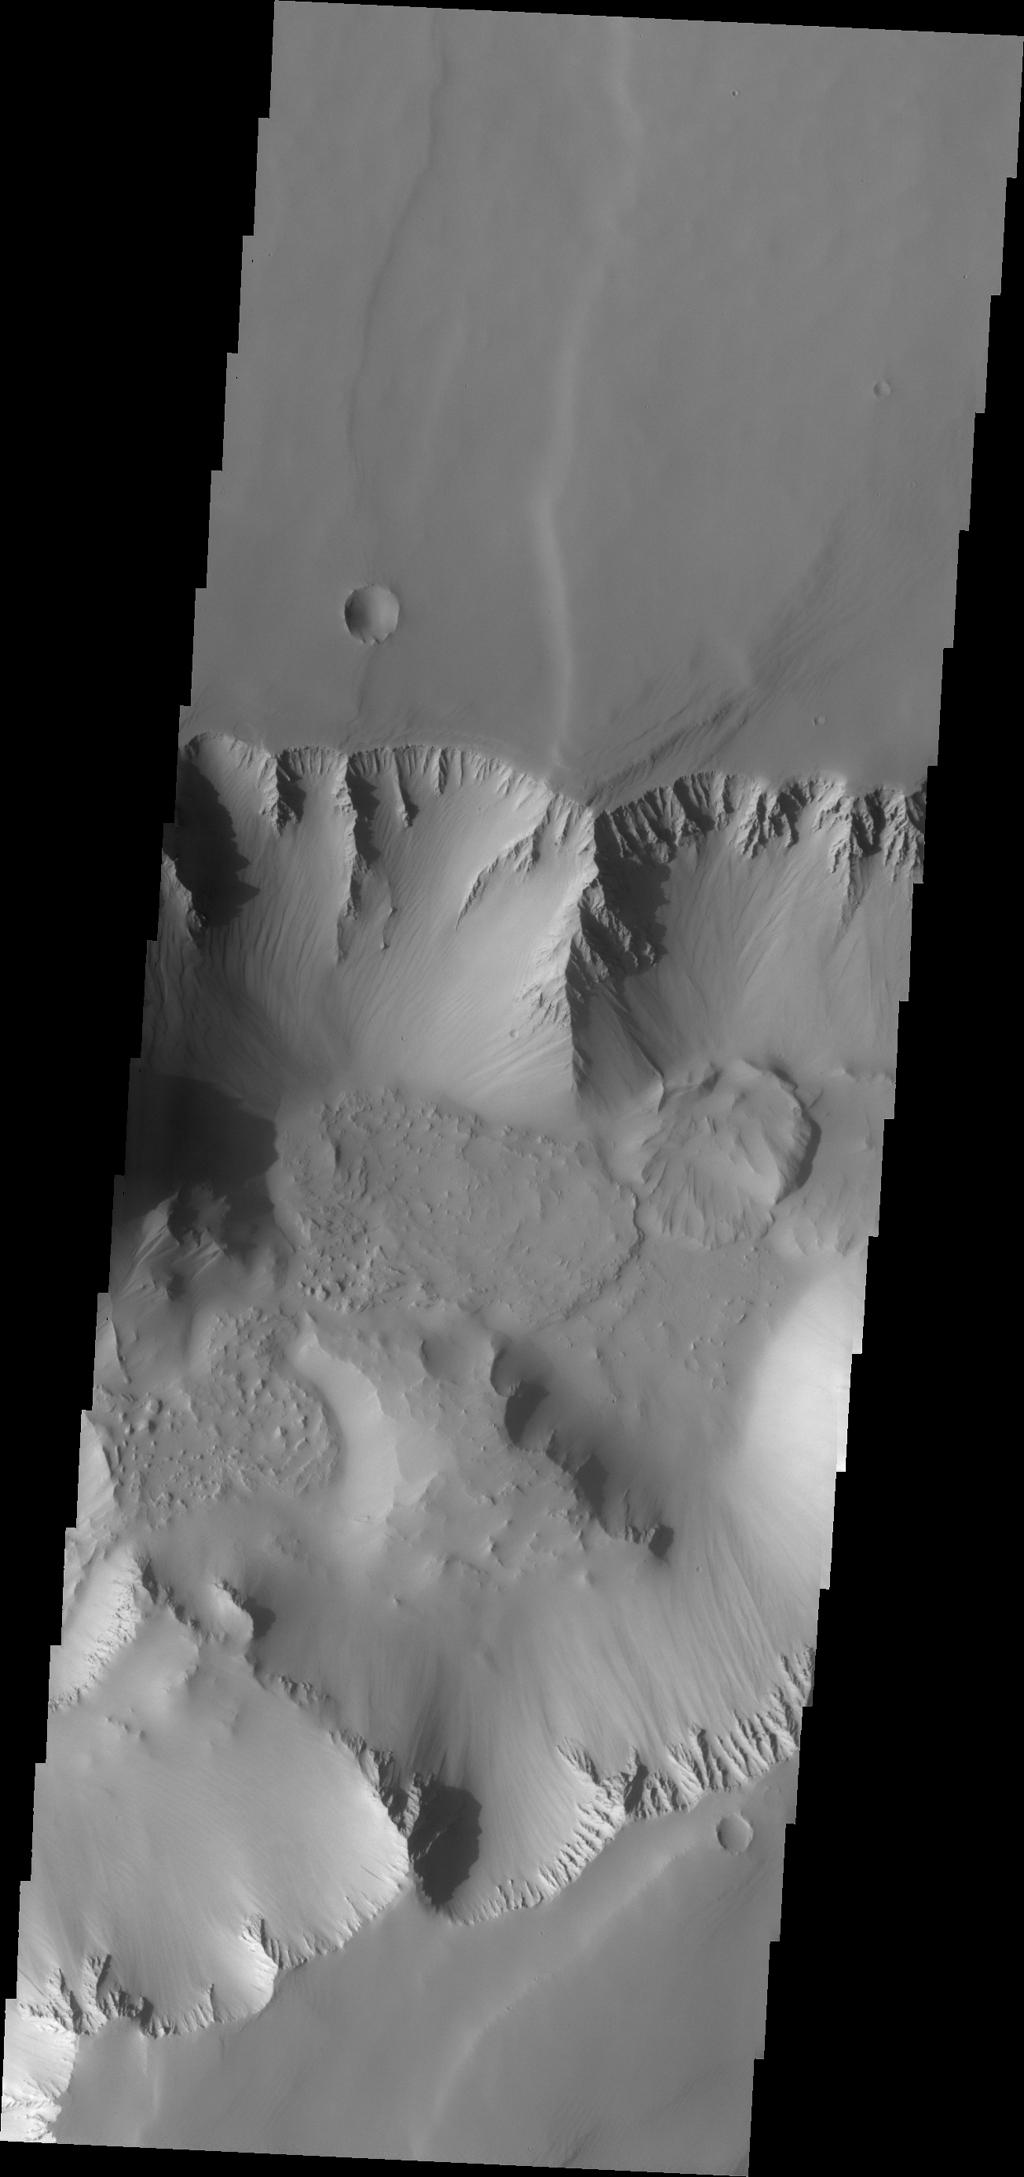 NASA's Mars Odyssey shows the location of the complexly fractured region called Noctis Labyrinthus at the westernmost end of Valles Marineris. The canyon systems in Noctis Labyrinthus do not reach the depths of the chasma of Valles Marineris.